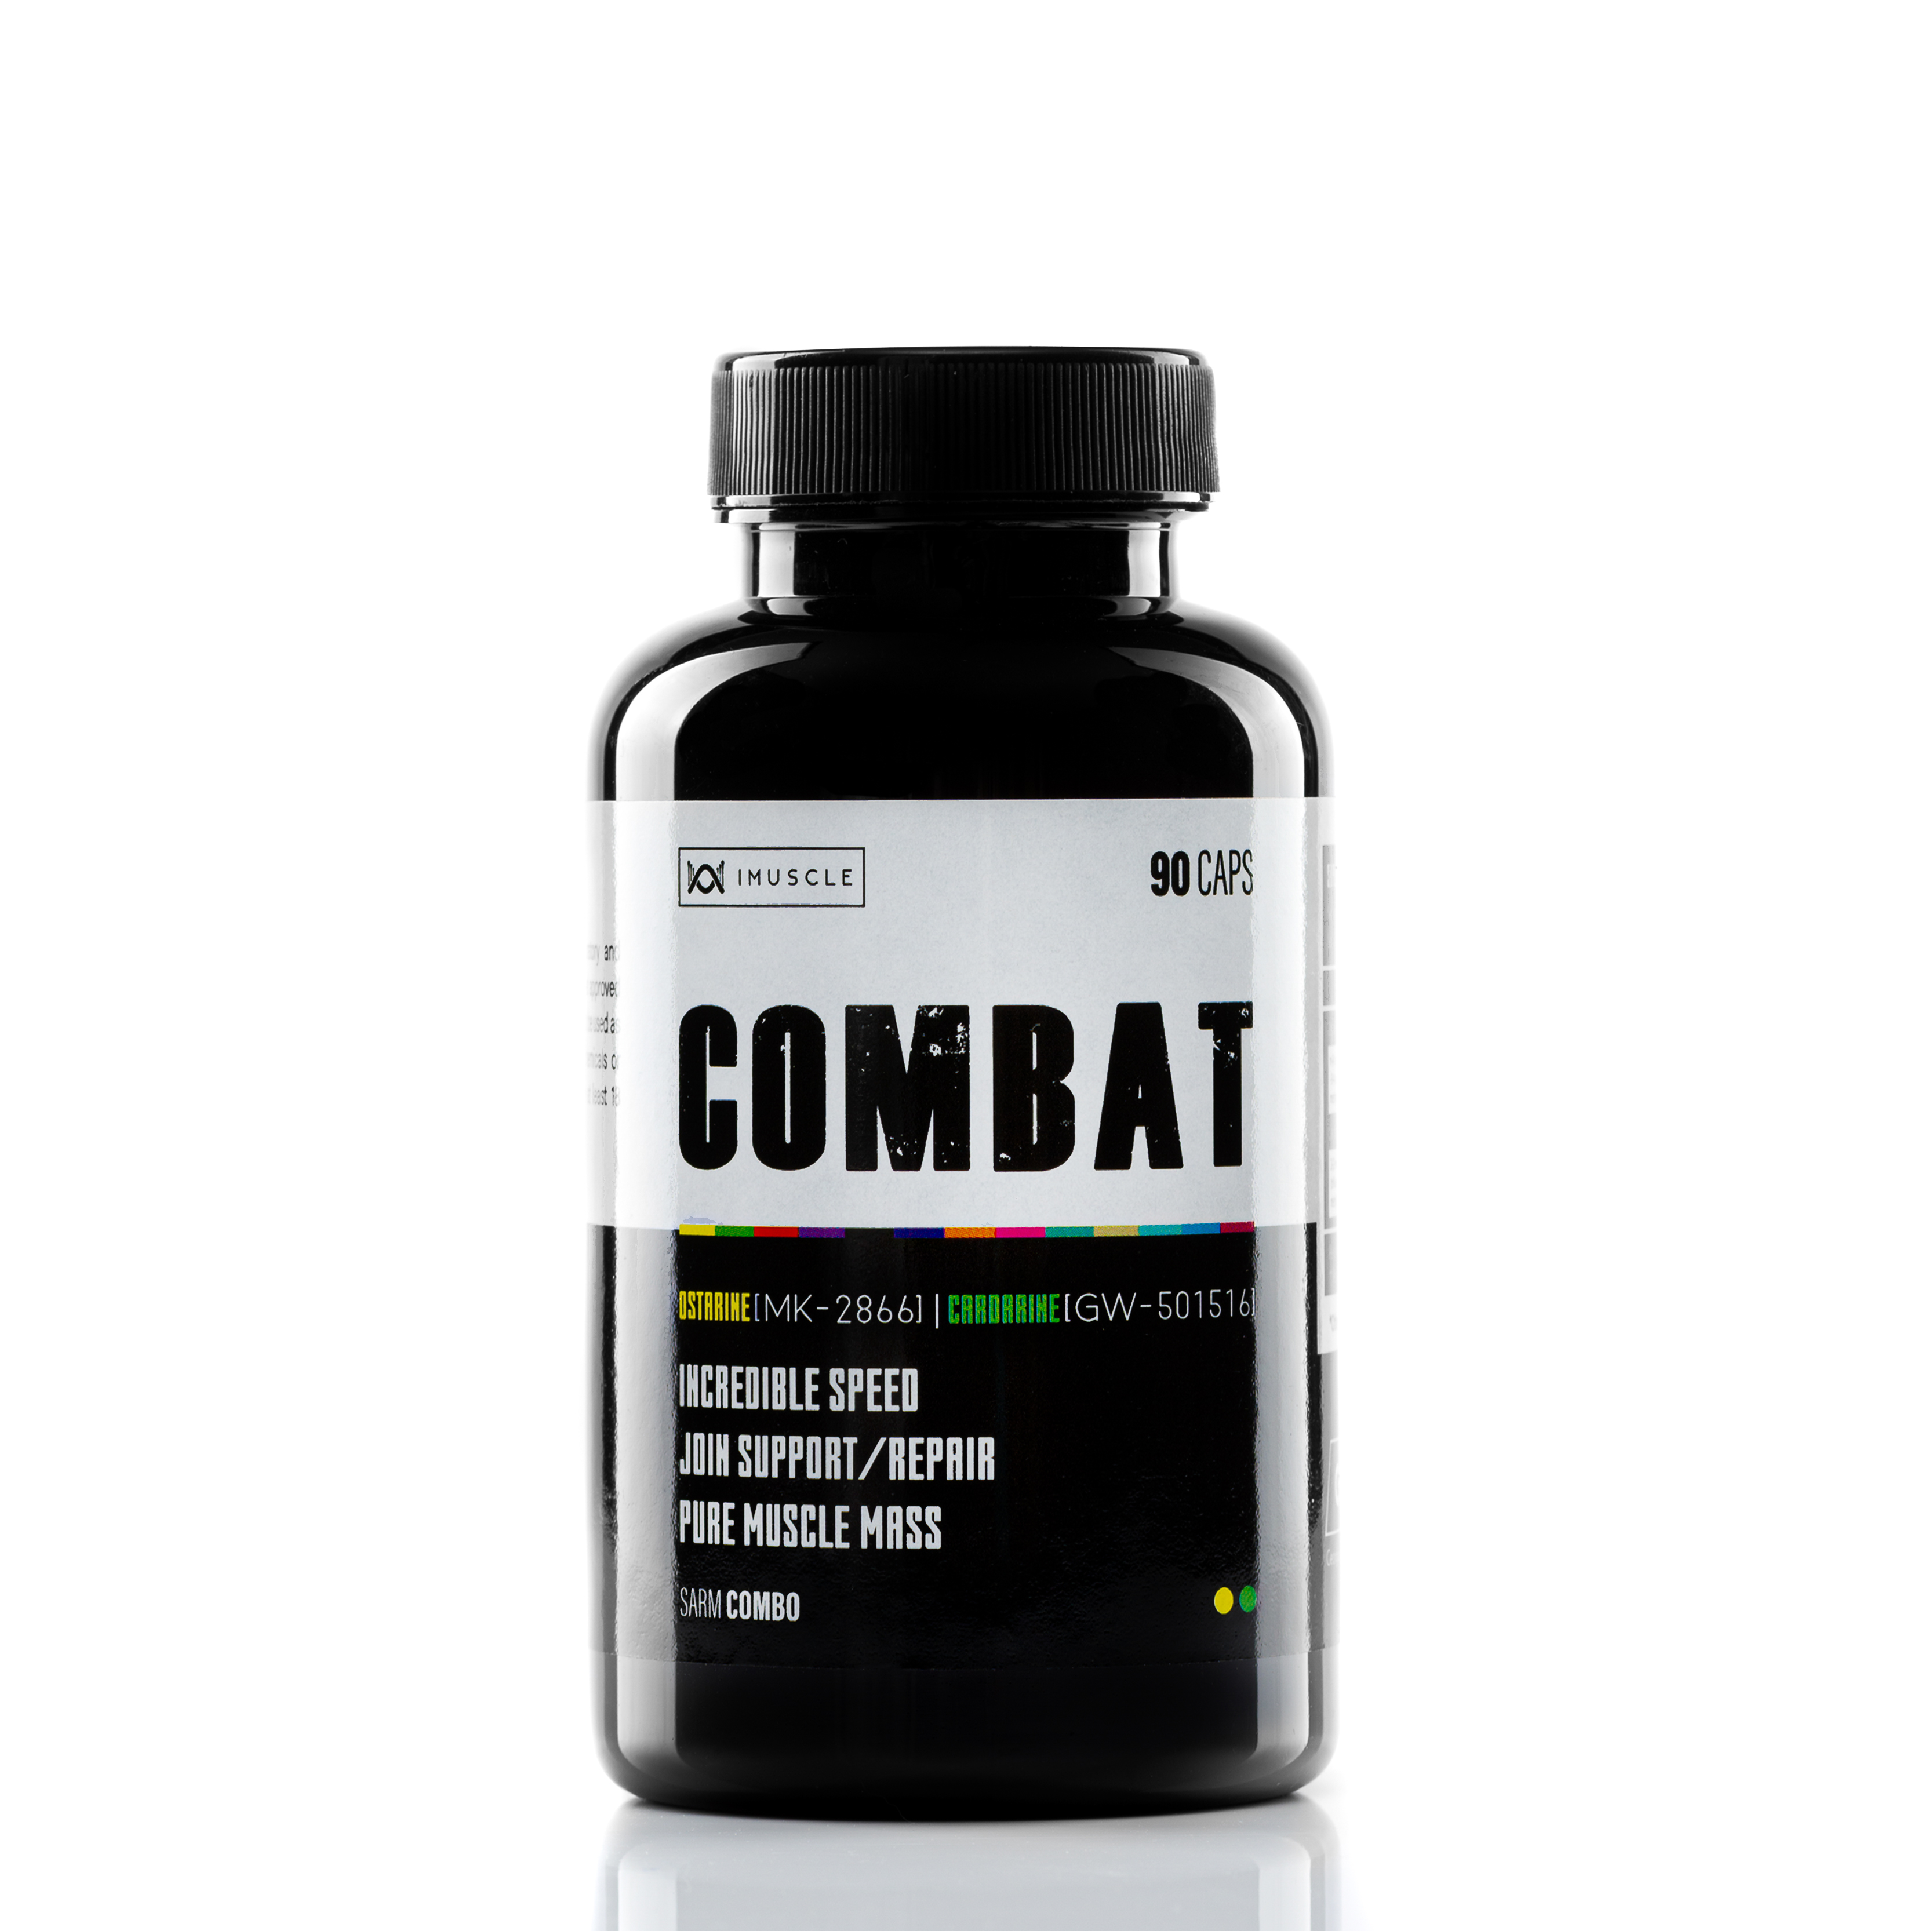 iMuscle Combat - combo sarms